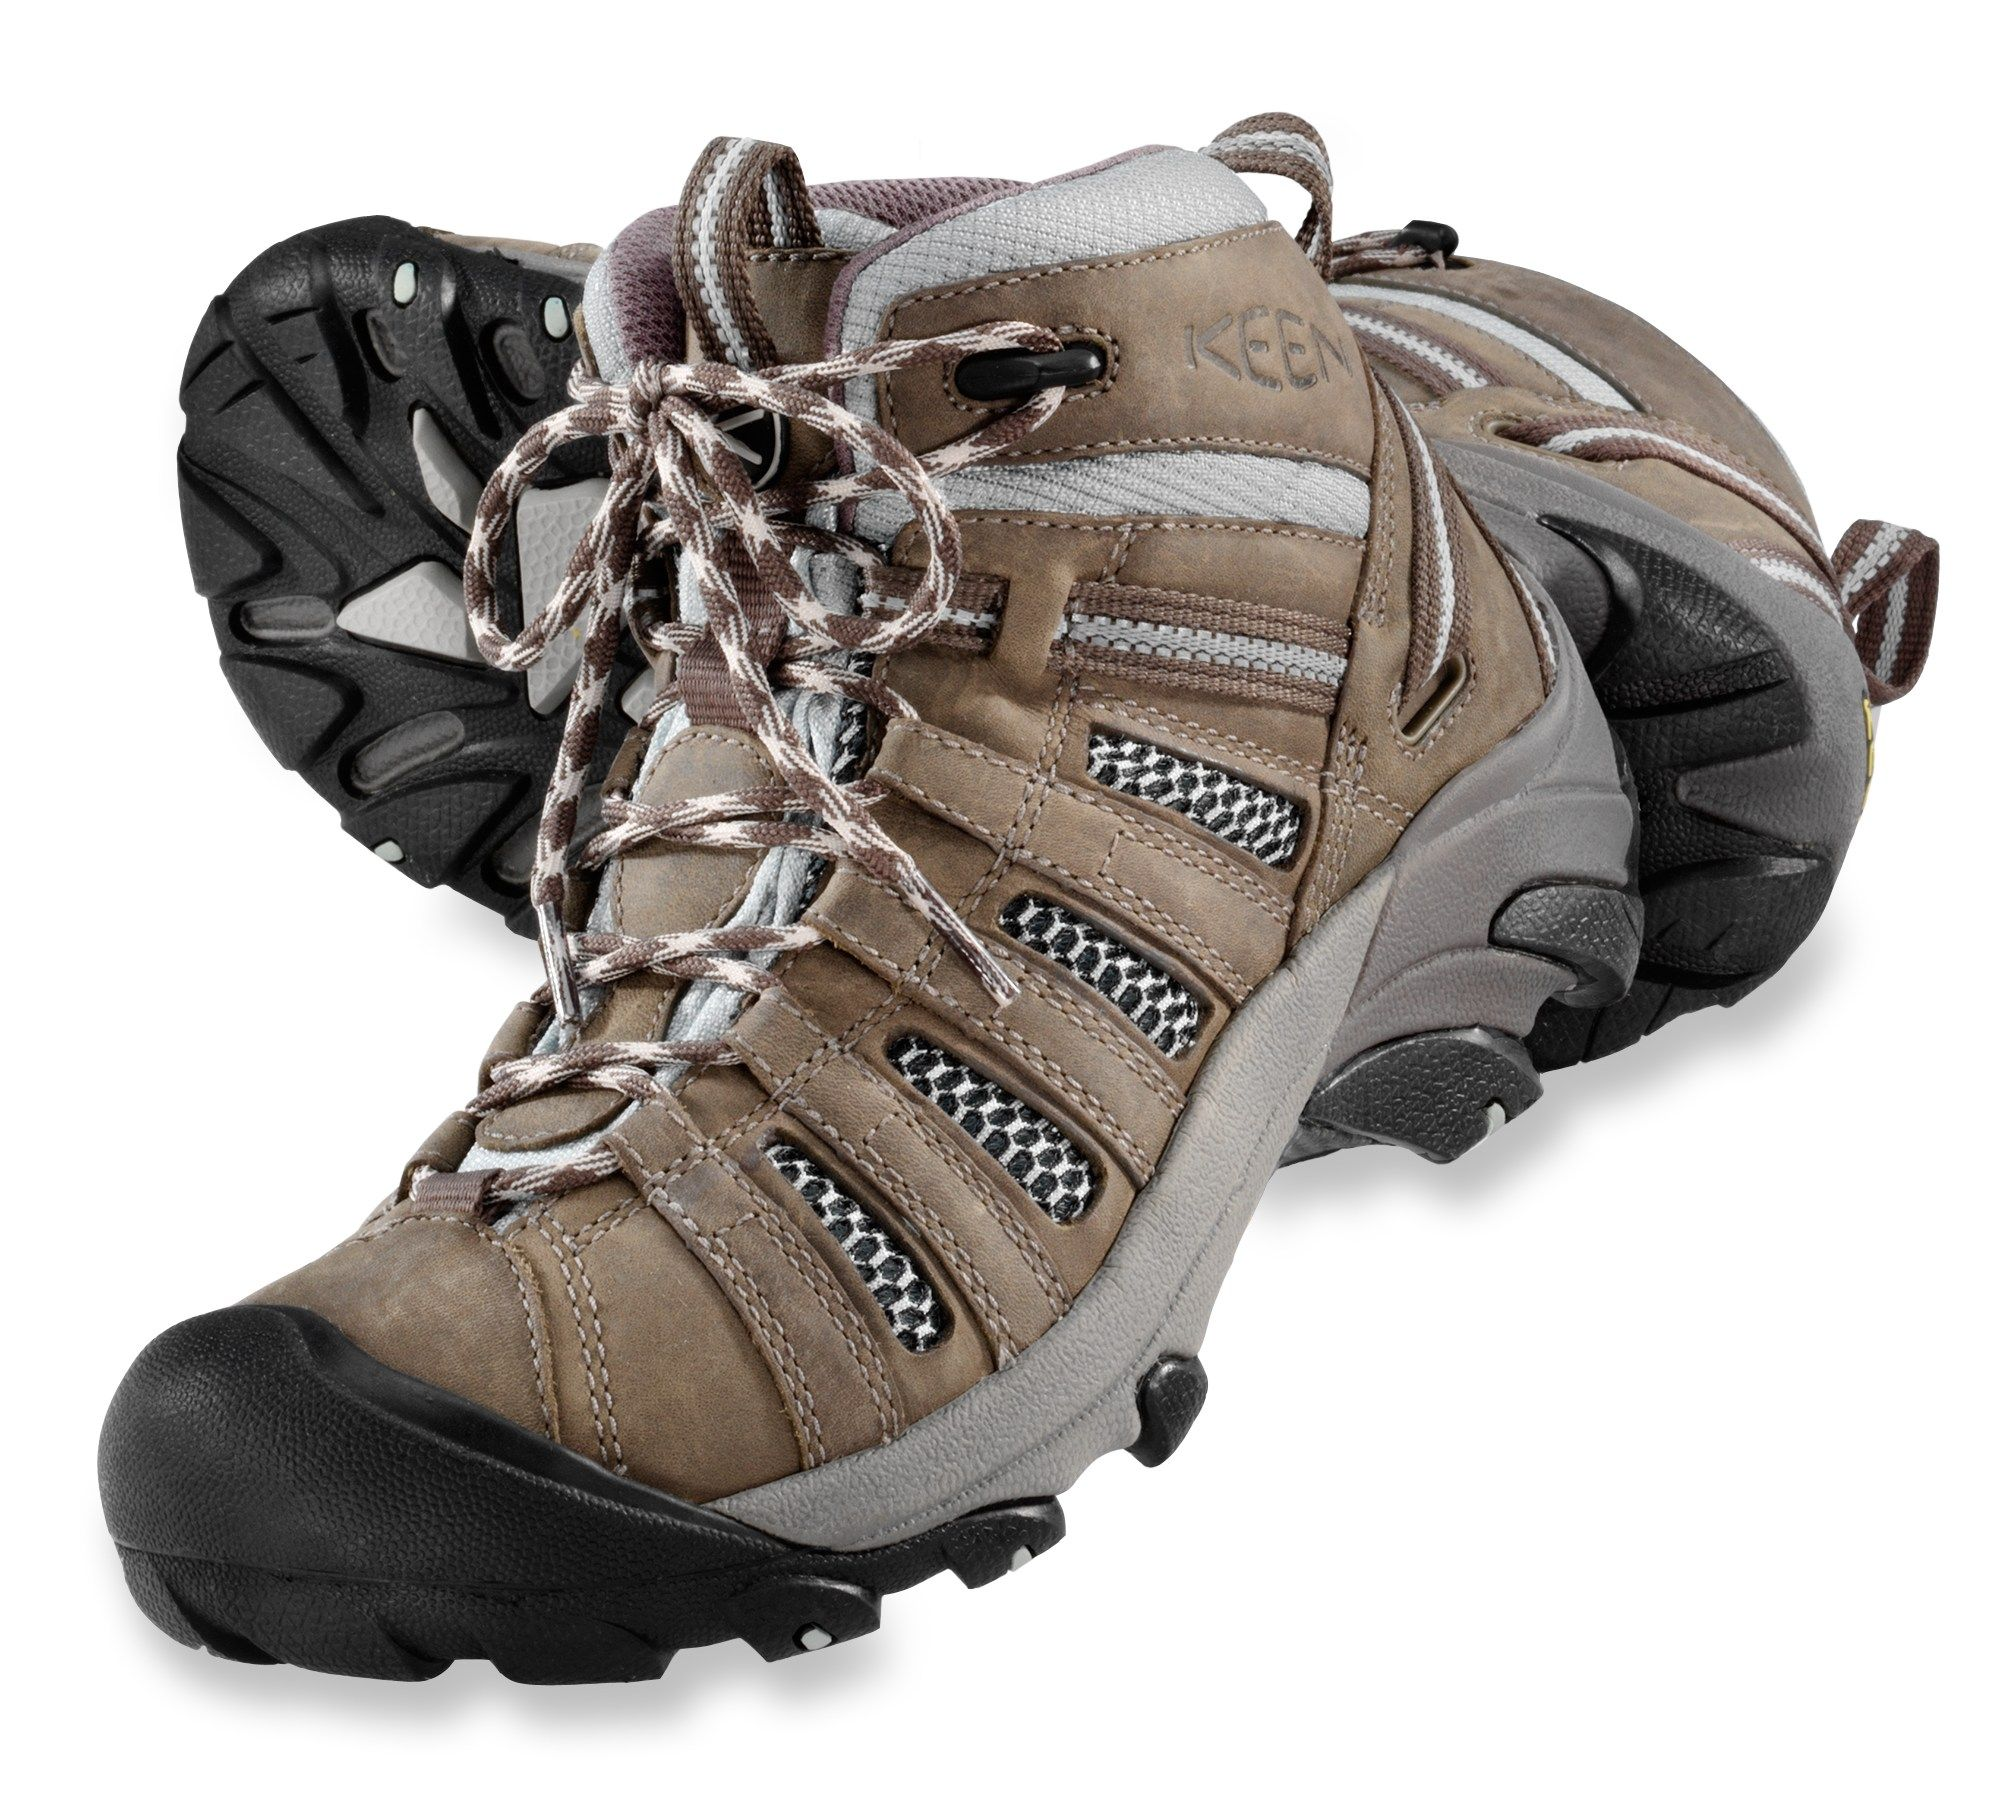 Womens Keen Hiking boots. These are the BEST hiking boots ...